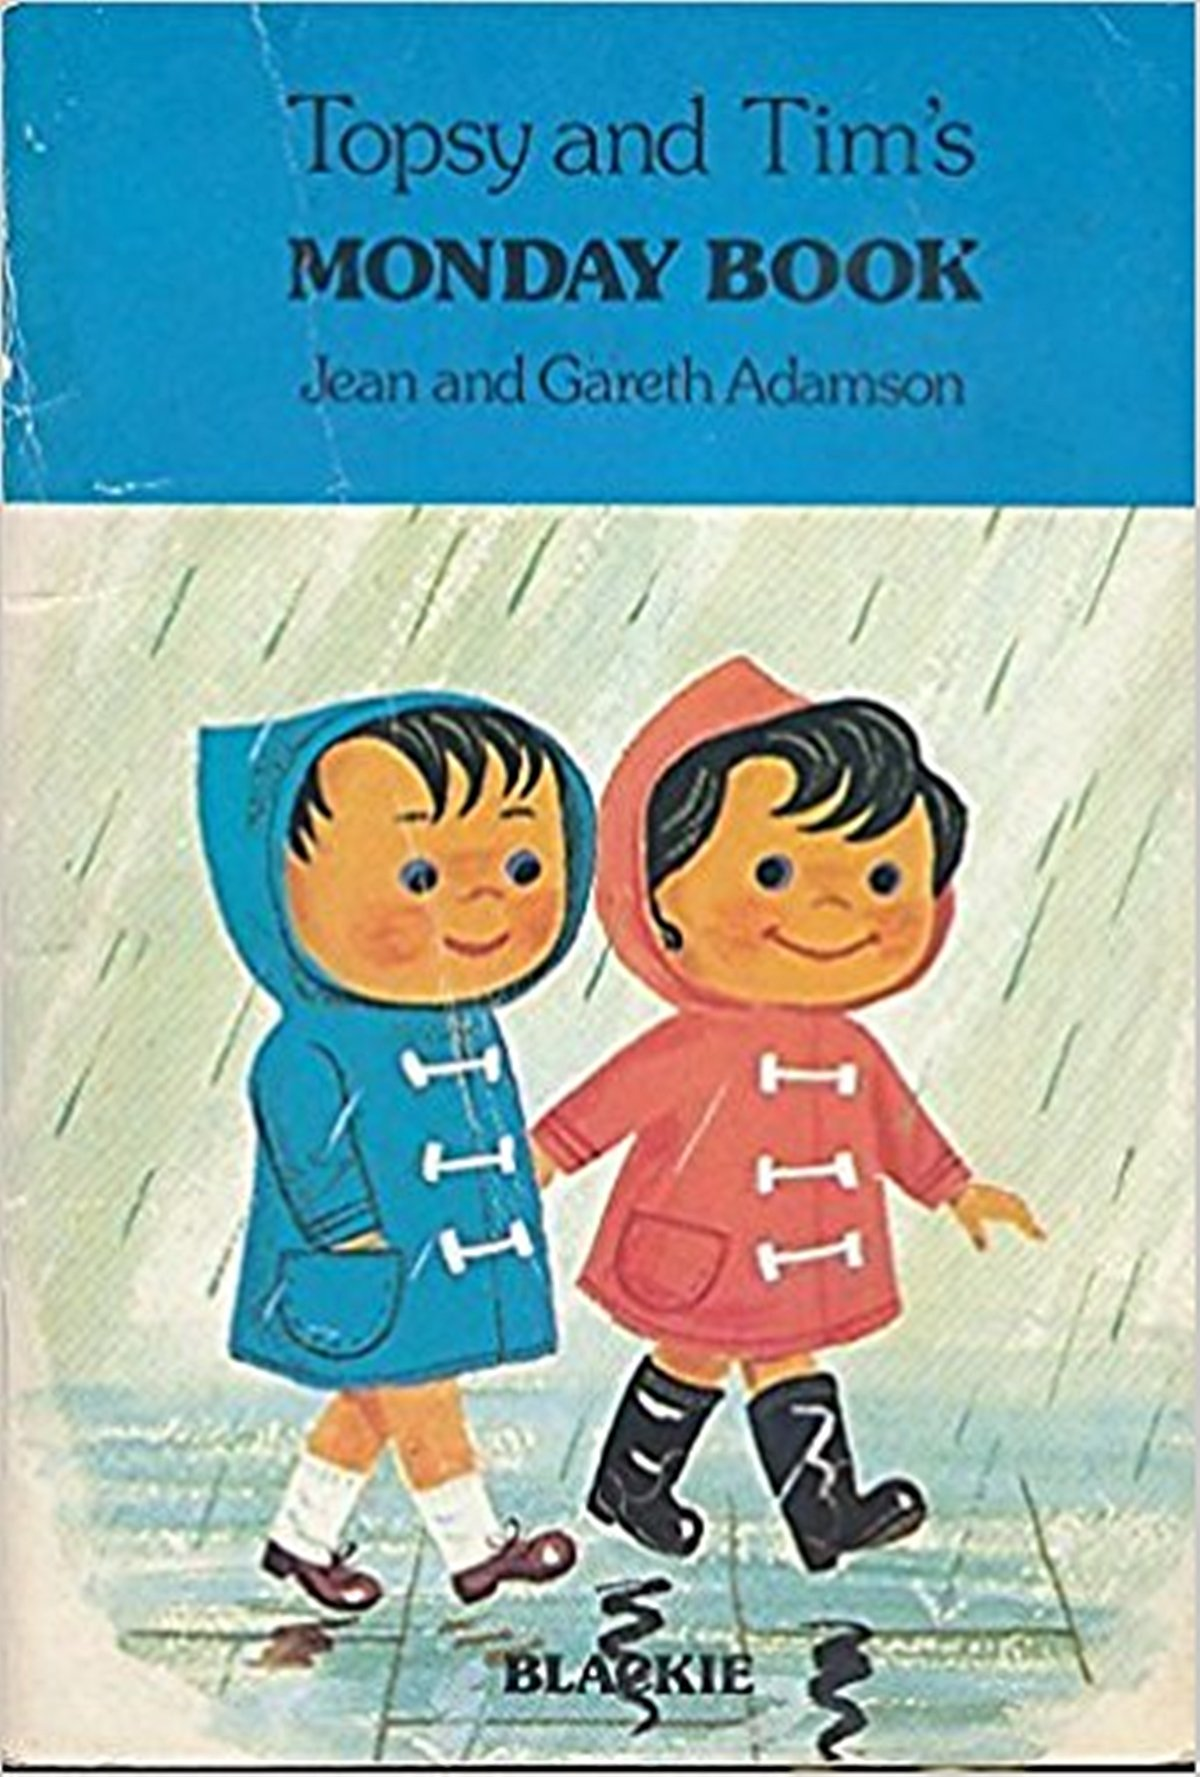 20 1 20 Books That Will Remind You Of Your Childhood